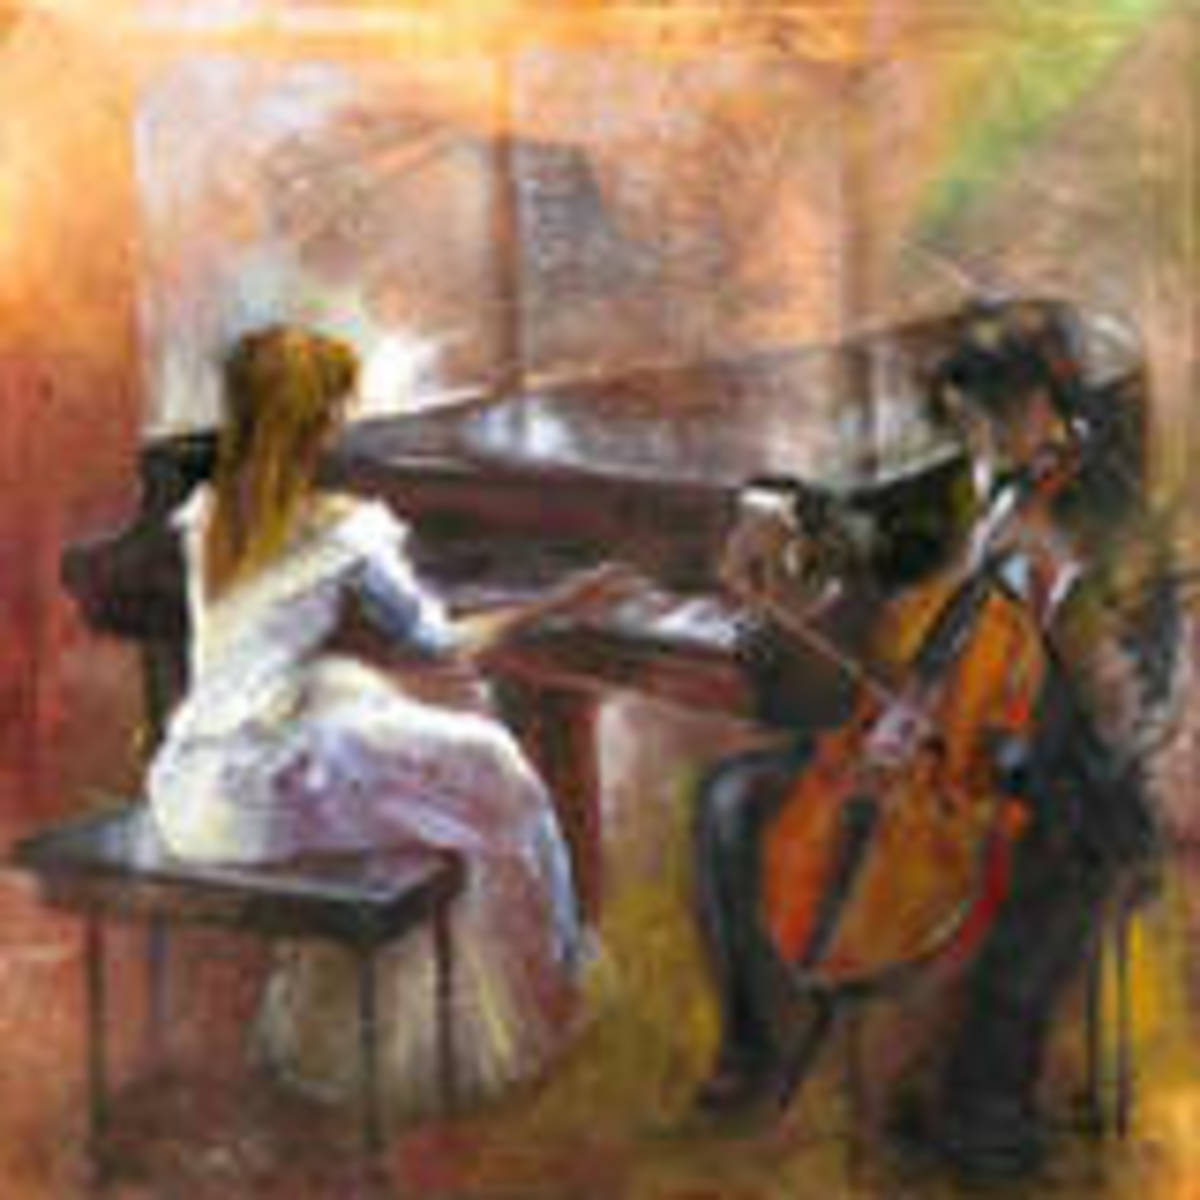 Performing music on a grand piano and cello.